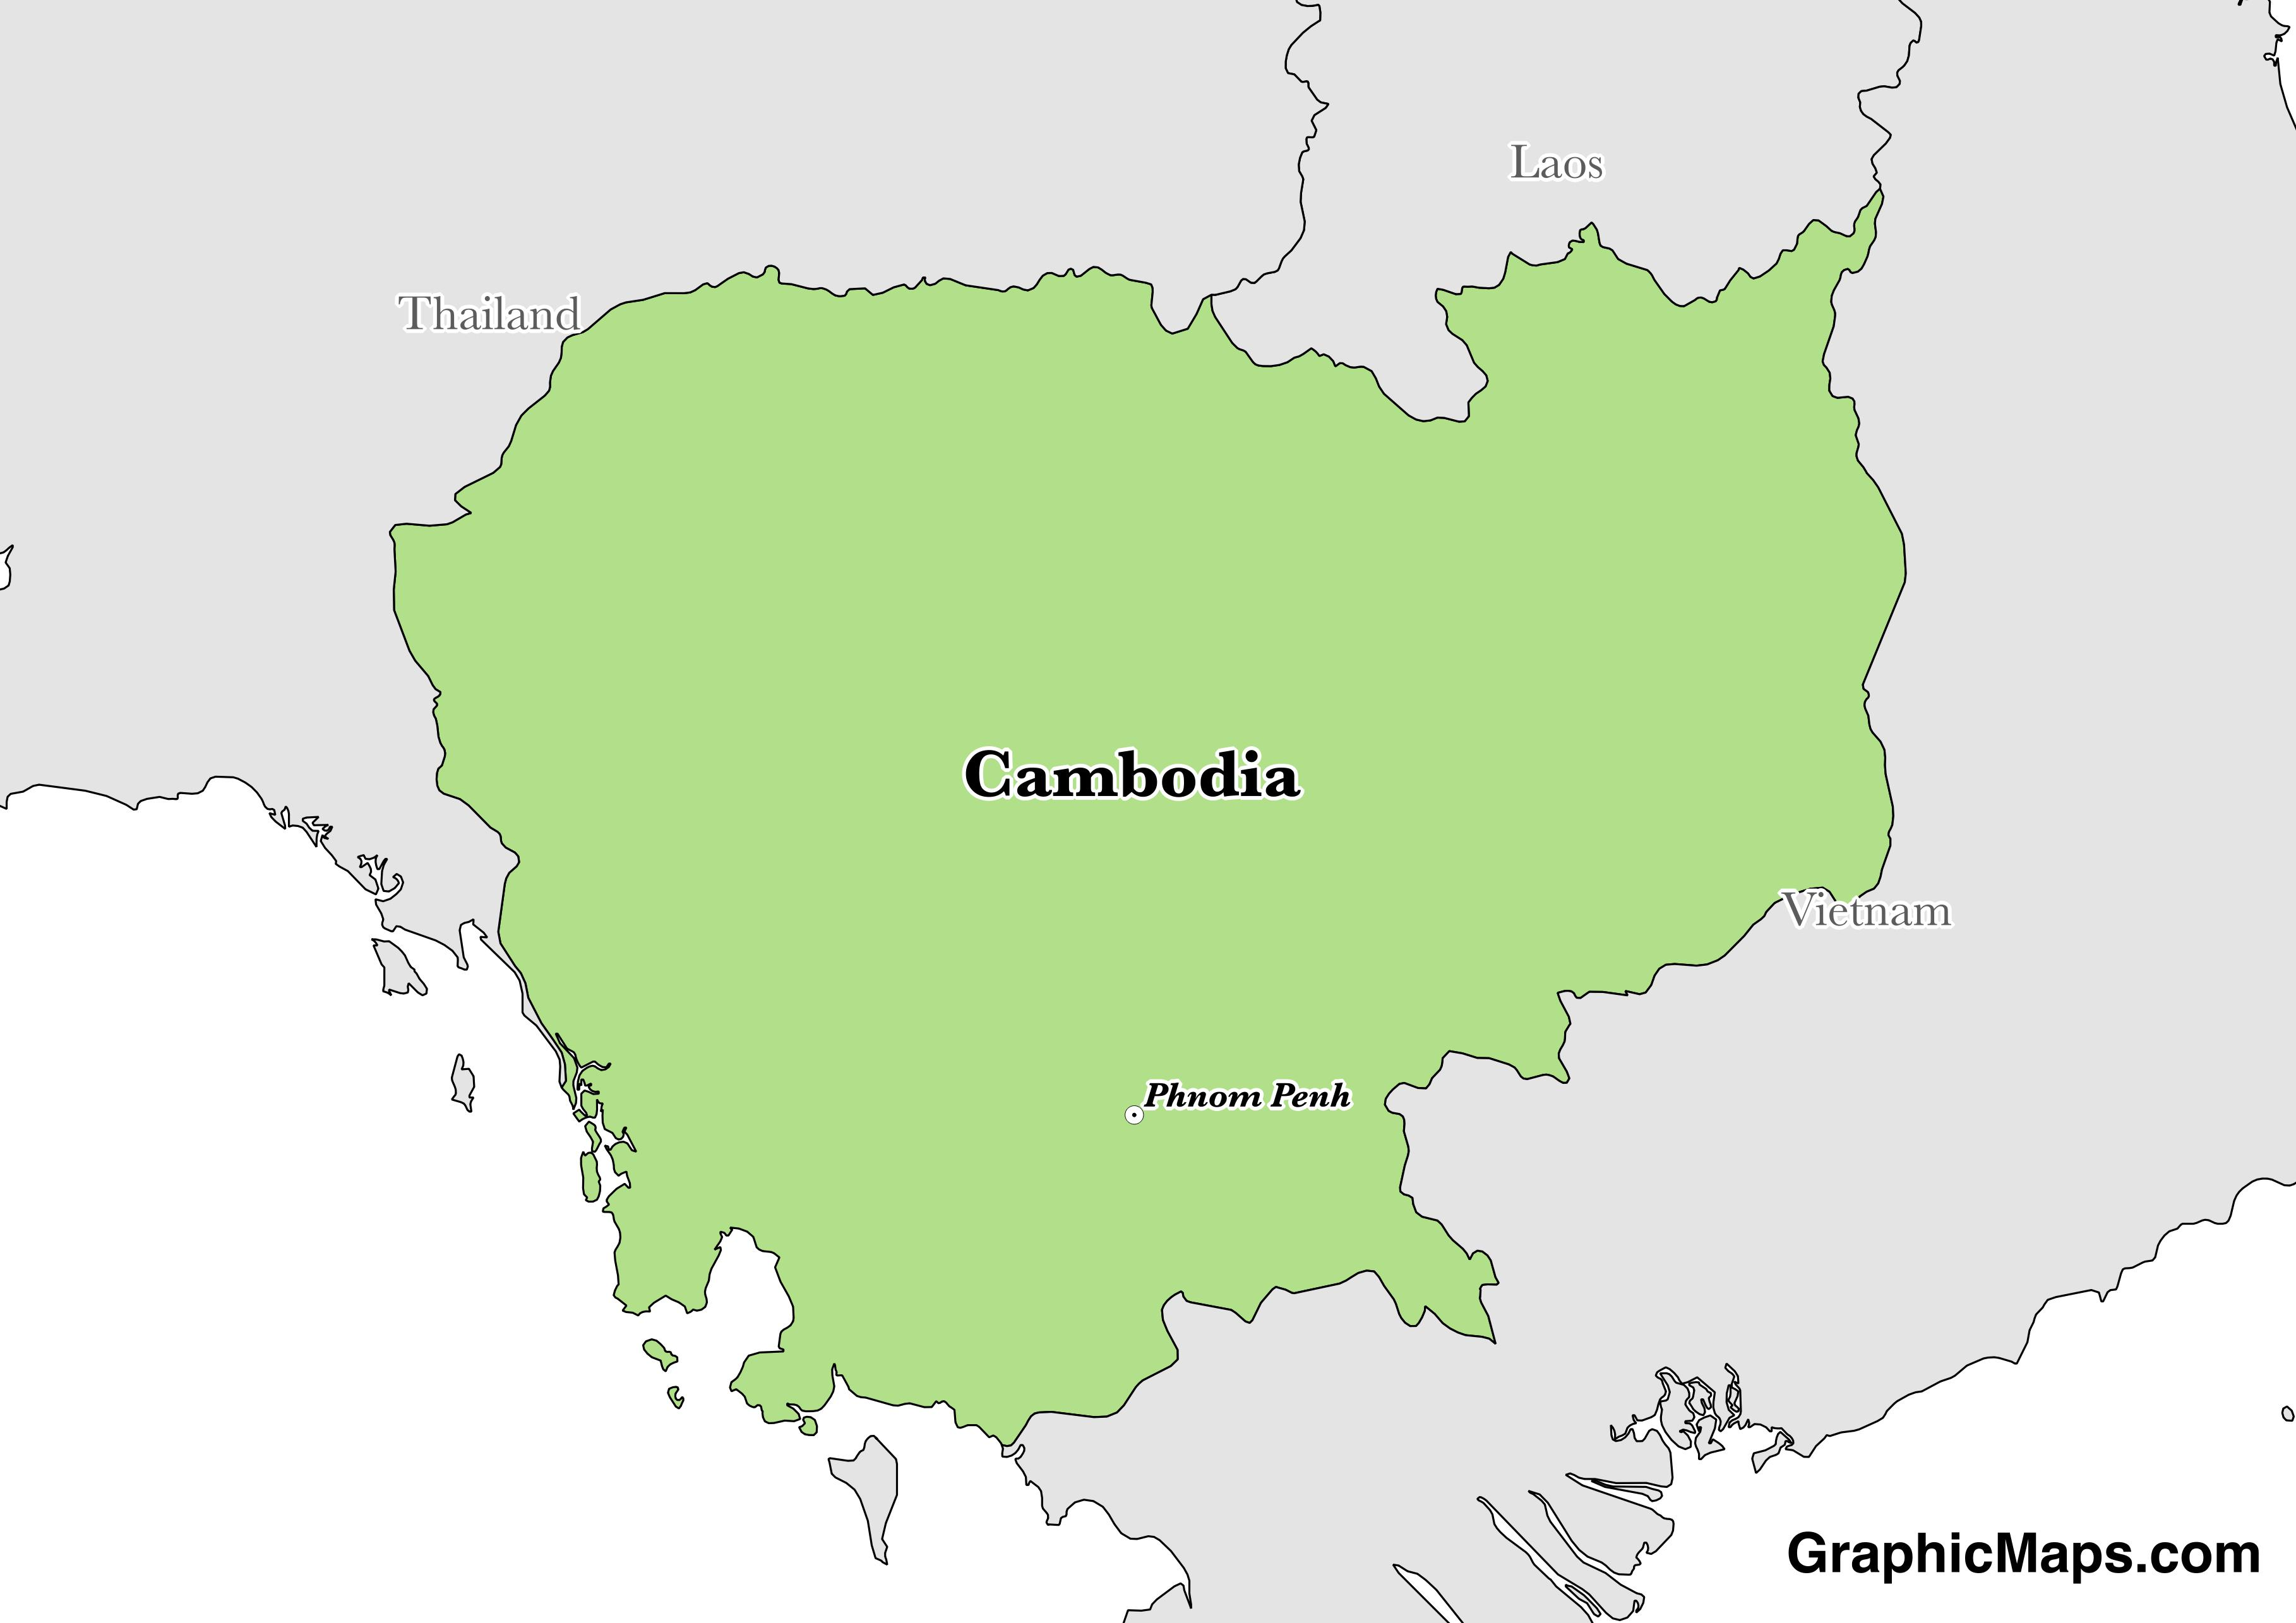 Map showing the location of Cambodia